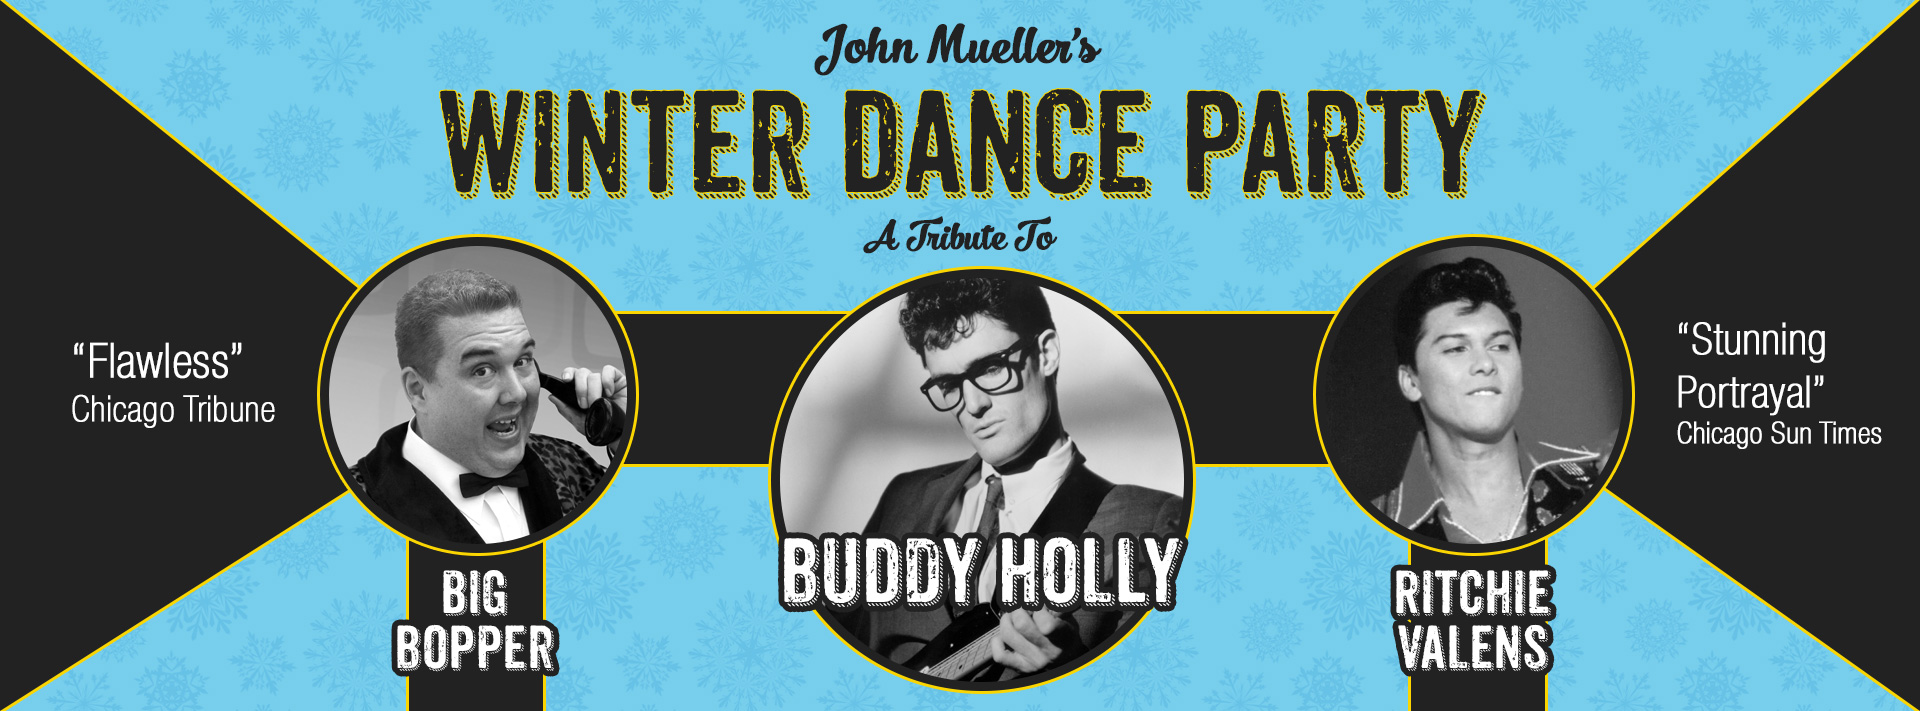 John Mueller's Winter Dance Party®